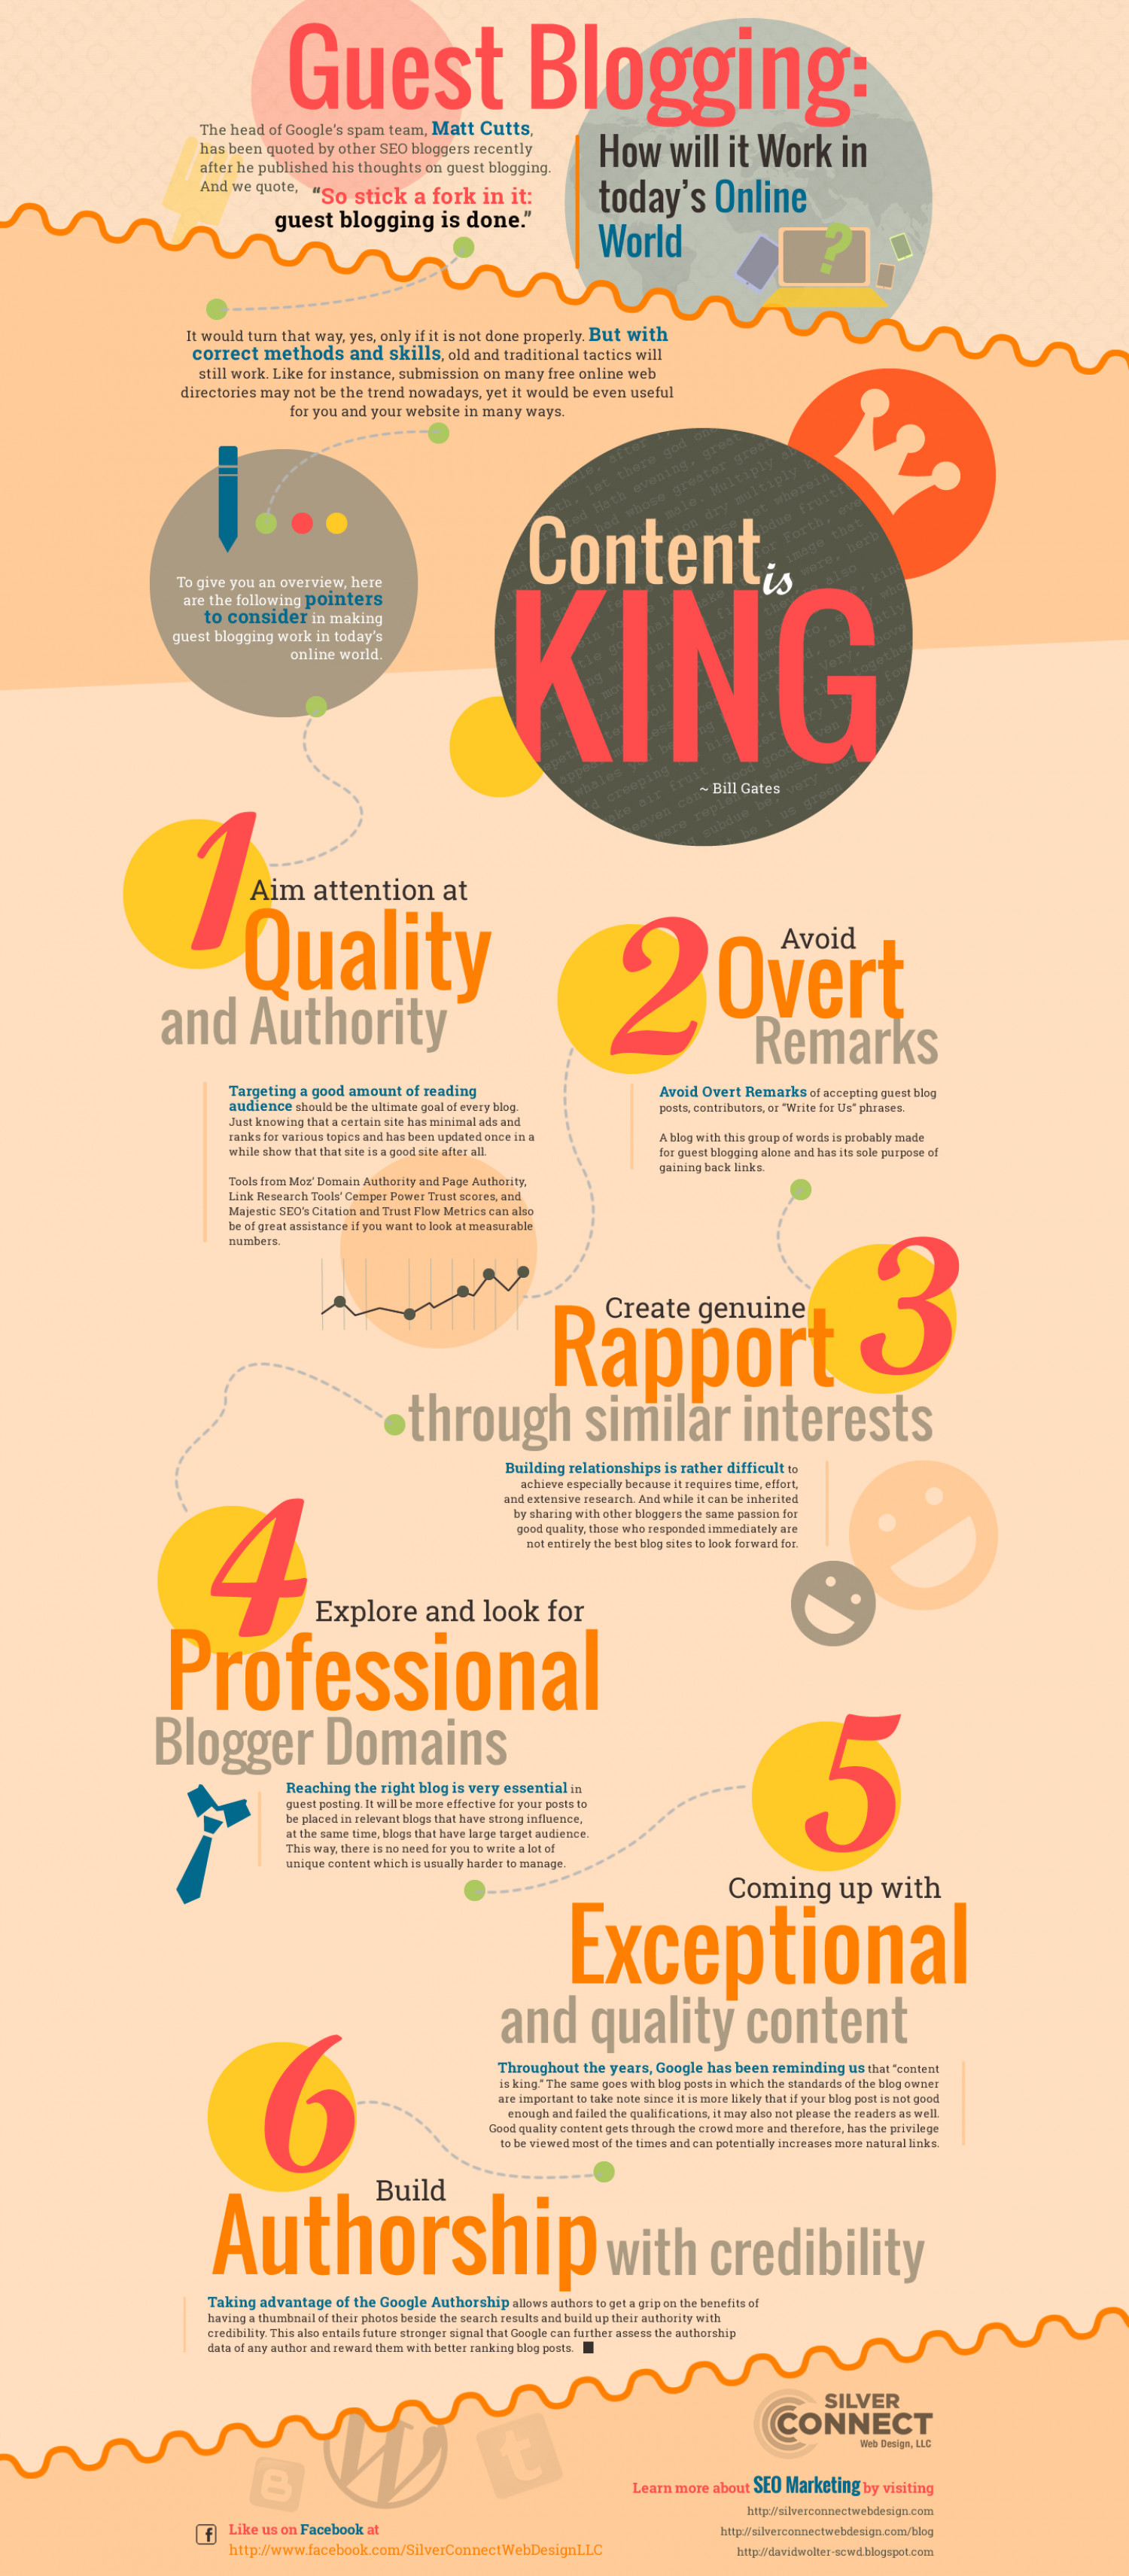 Guess Blogging: How will it Work in Today's Online World Infographic